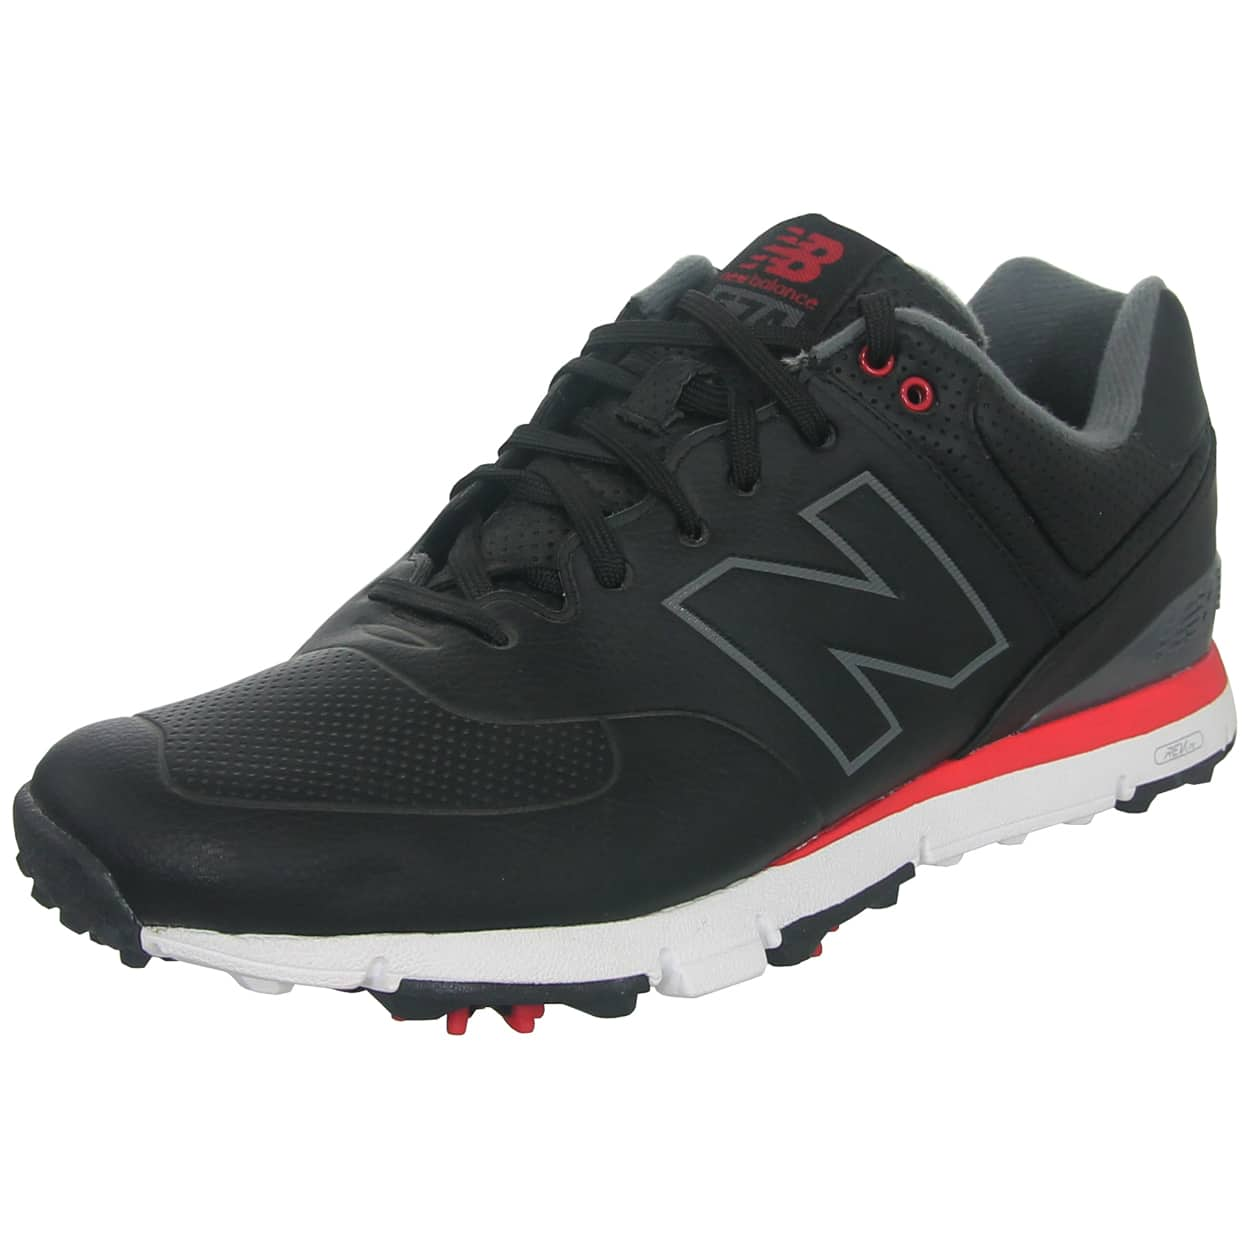 New Balance NBG574 Men's Microfiber Leather Golf Shoes - $46.99 + FS